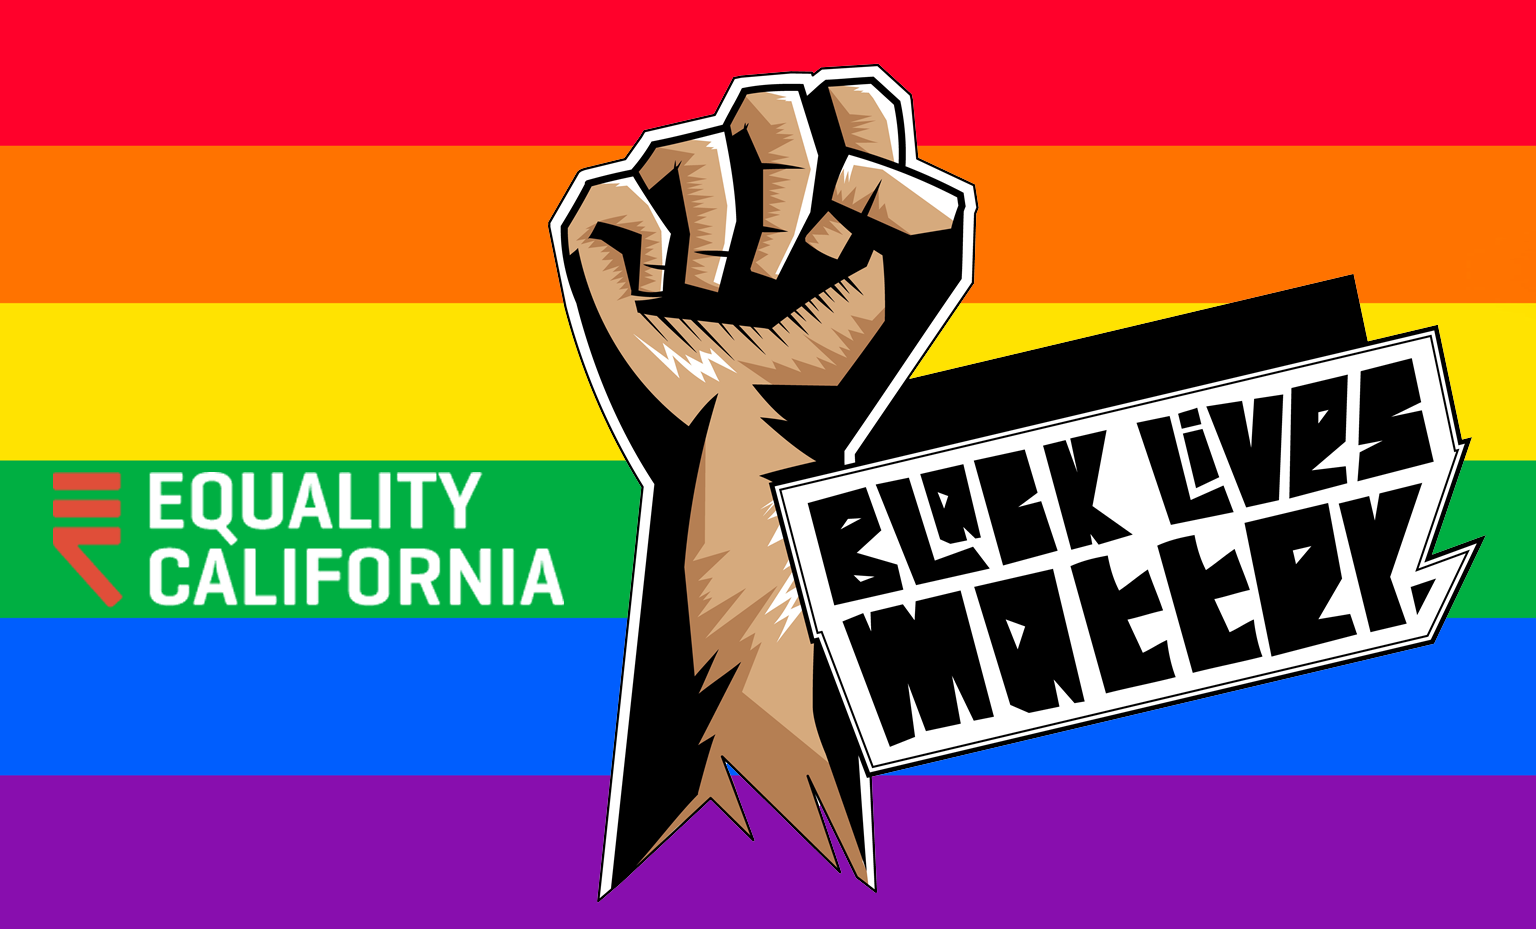 EQUALITY CALIFORNIA STATEMENT ON THE CONVICTION OF DEREK CHAUVIN FOR THE MURDER OF GEORGE FLOYD